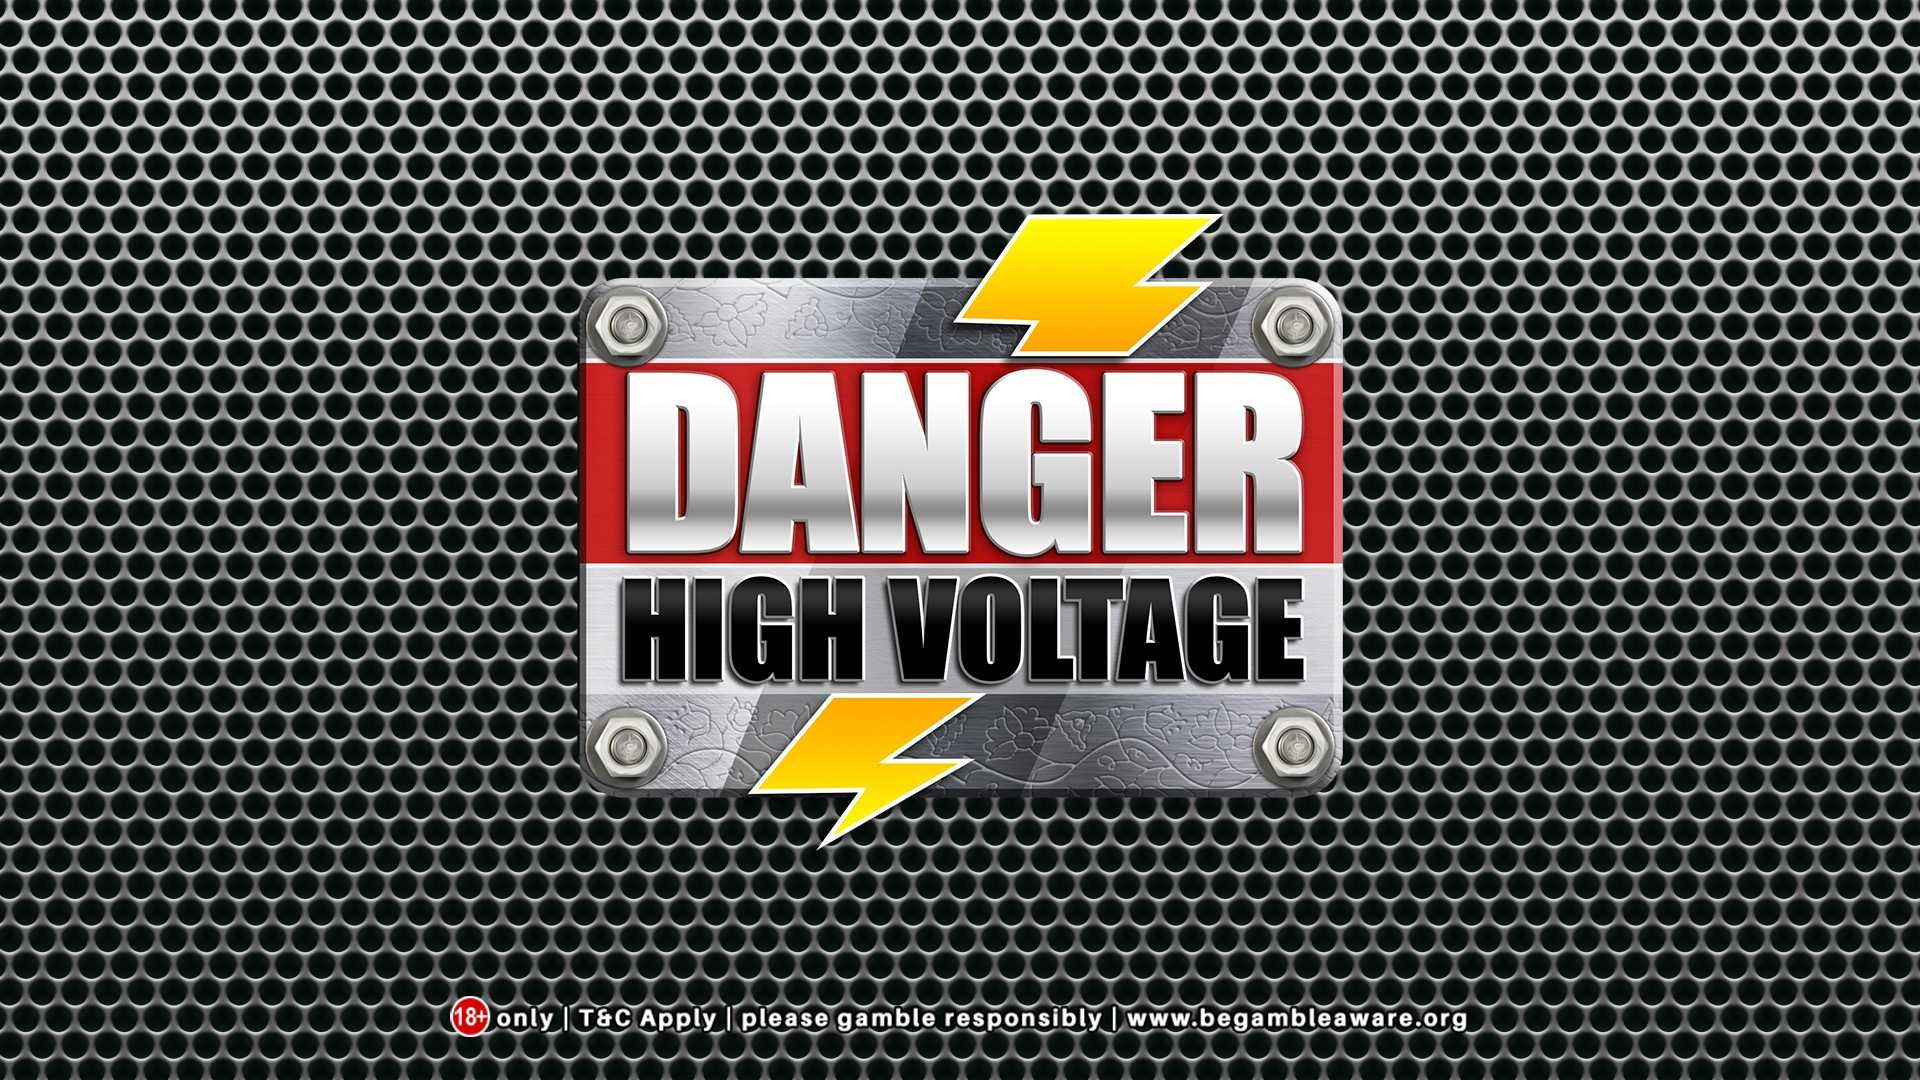 Danger High Voltage is one of those onlineslot game with